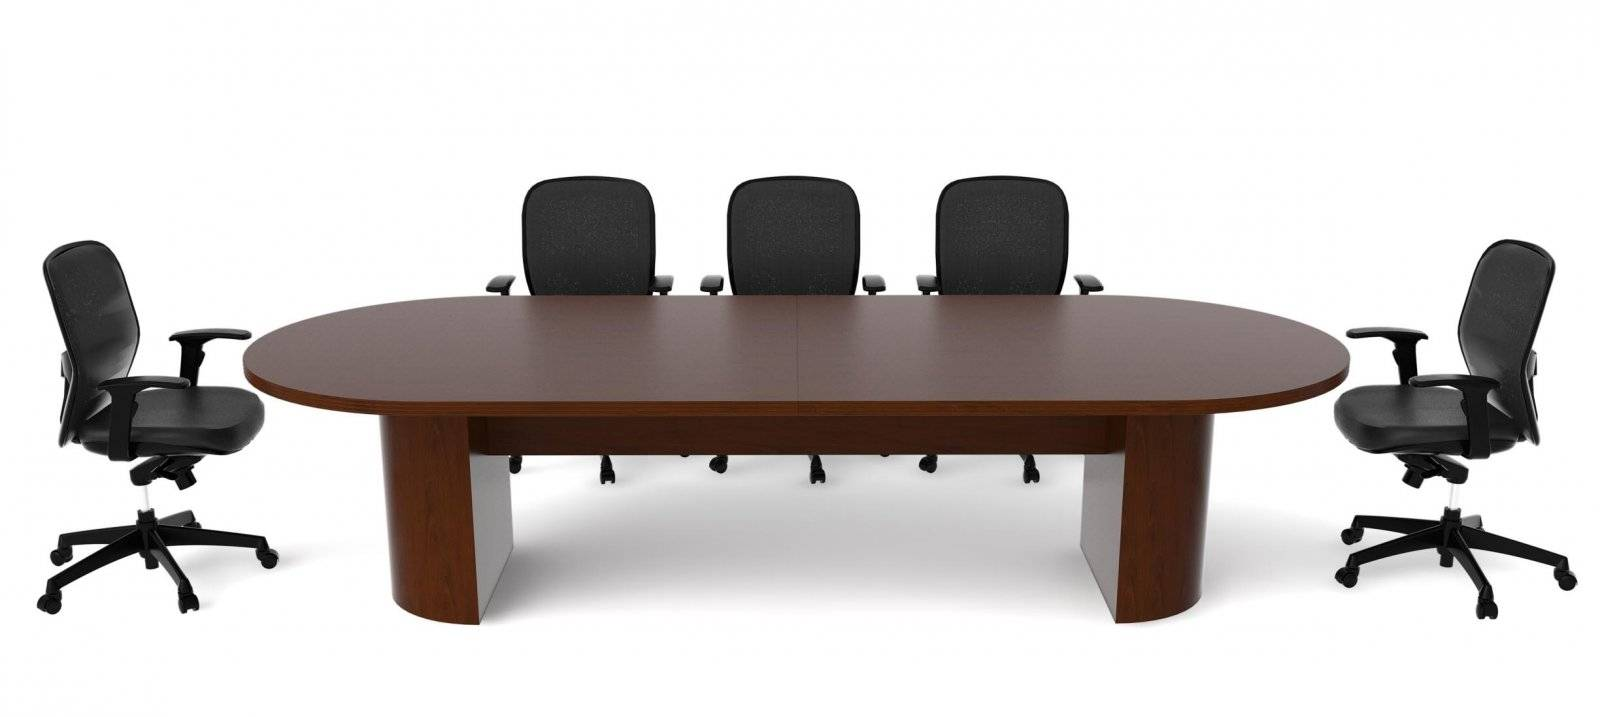 Cherryman jade series 120 racetrack conference table for 120 conference table